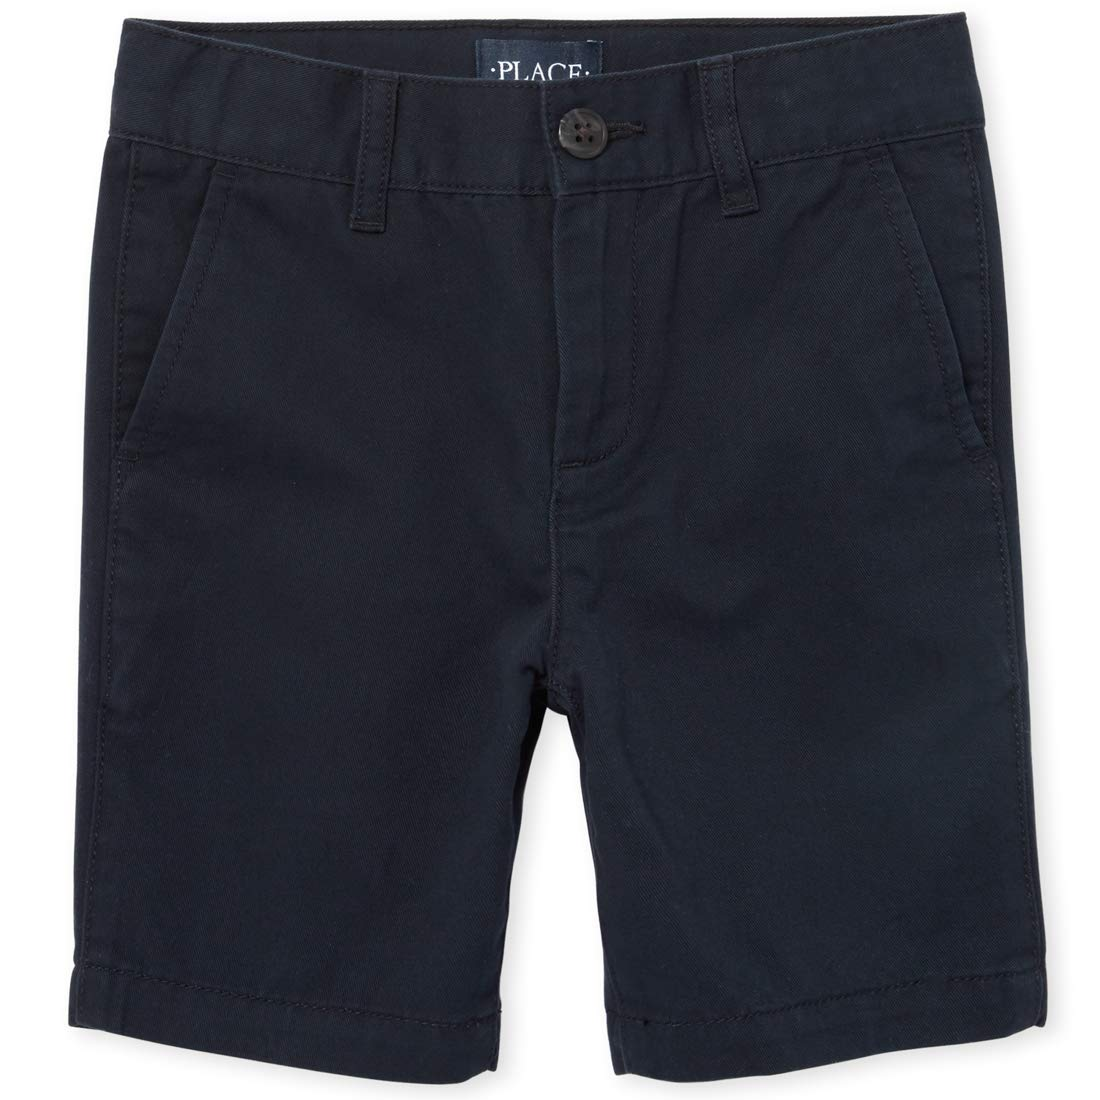 The Children's Place Boys' Big Uniform Chino Shorts, New Navy, 10 by The Children's Place